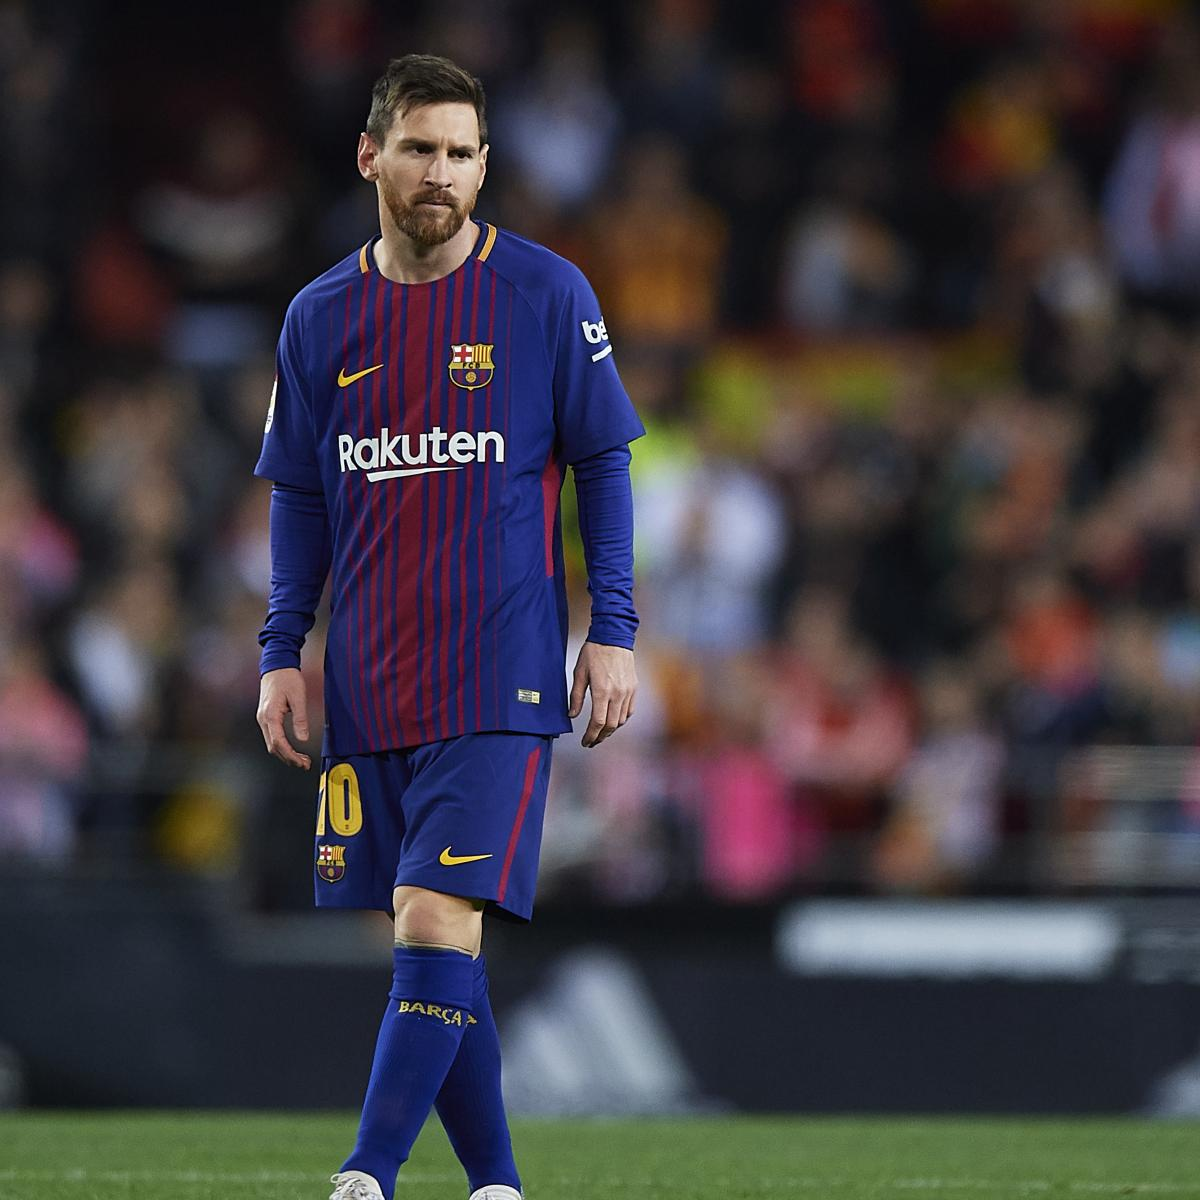 Barcelona Vs Celta Vigo In Youtube: Barcelona Vs. Celta Vigo: Team News, Preview, Live Stream